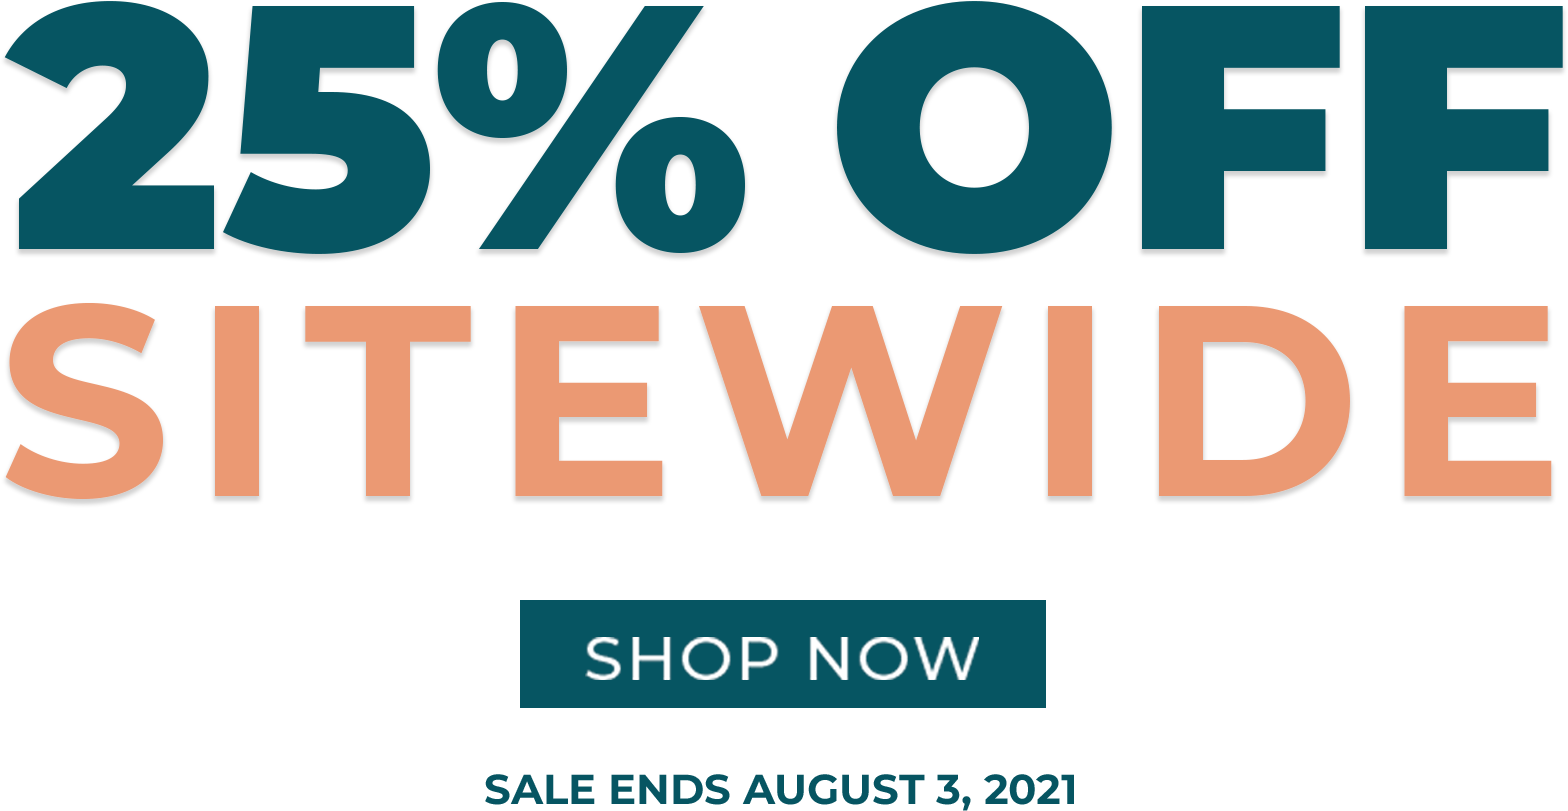 25 percent off sitewide - shop now - sale ends August 3rd, 2021